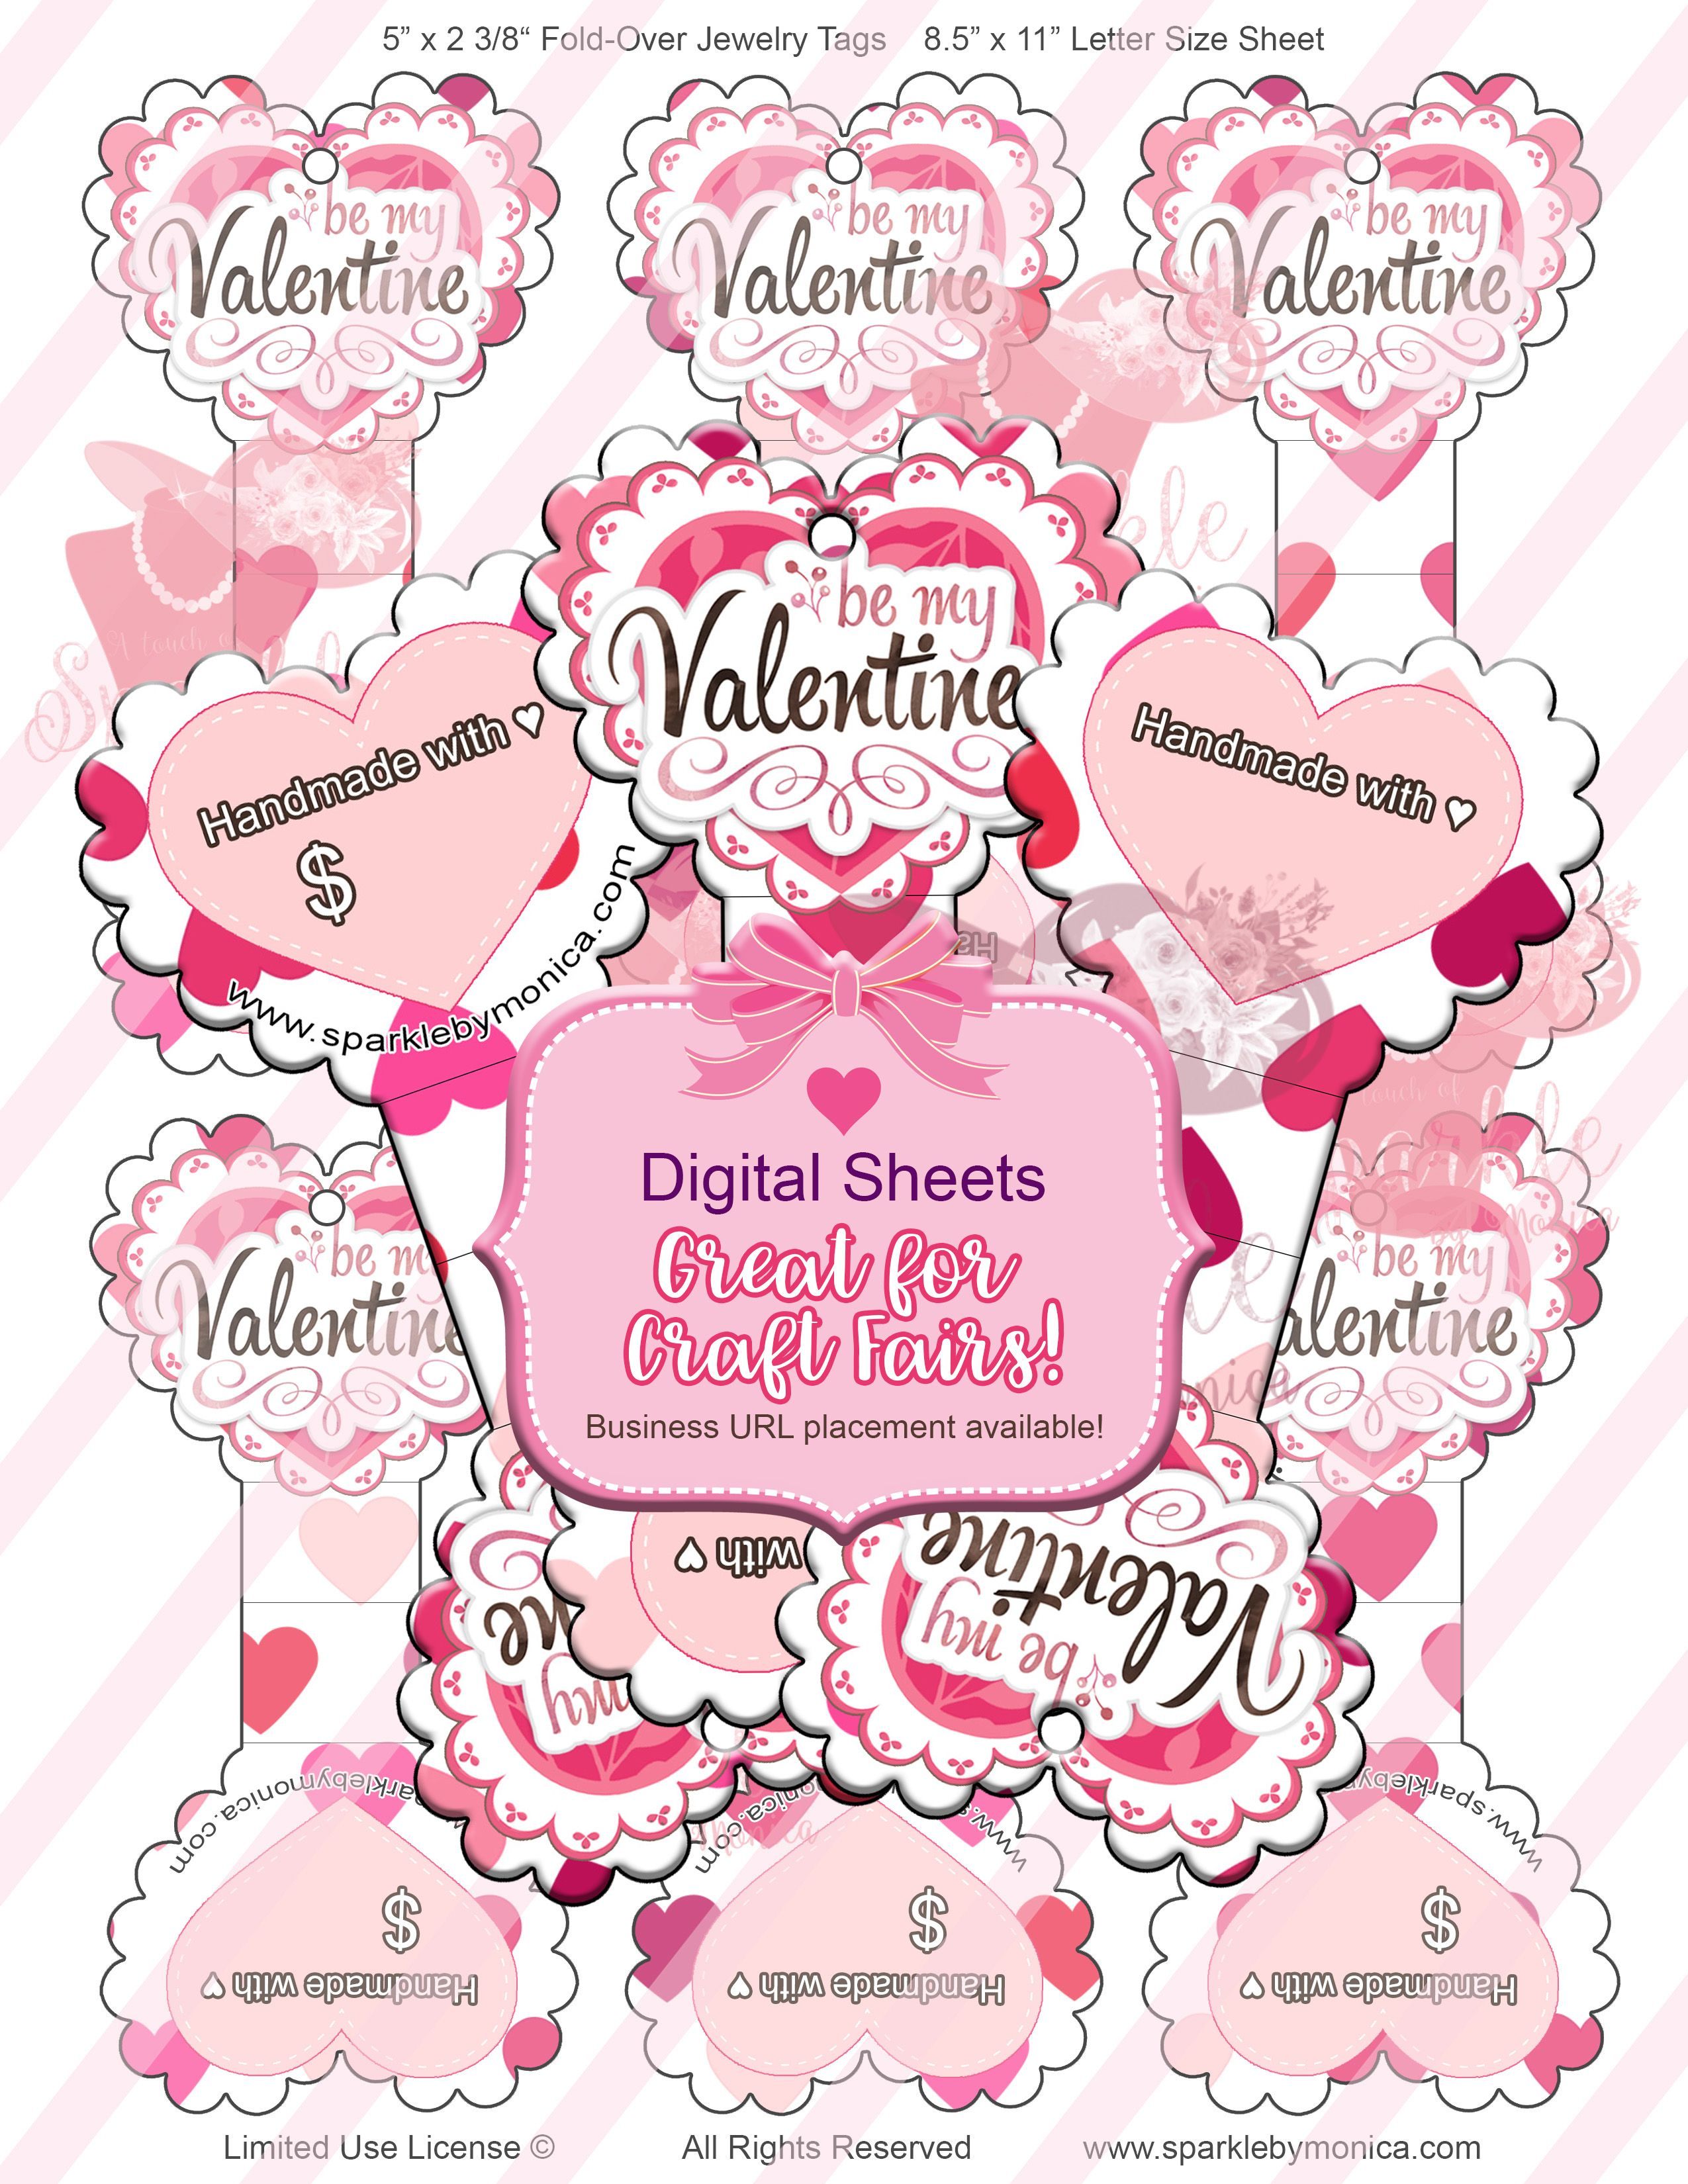 Valentine Heart Shaped Jewelry Hang Tags, Digital Jewelry Cards ...